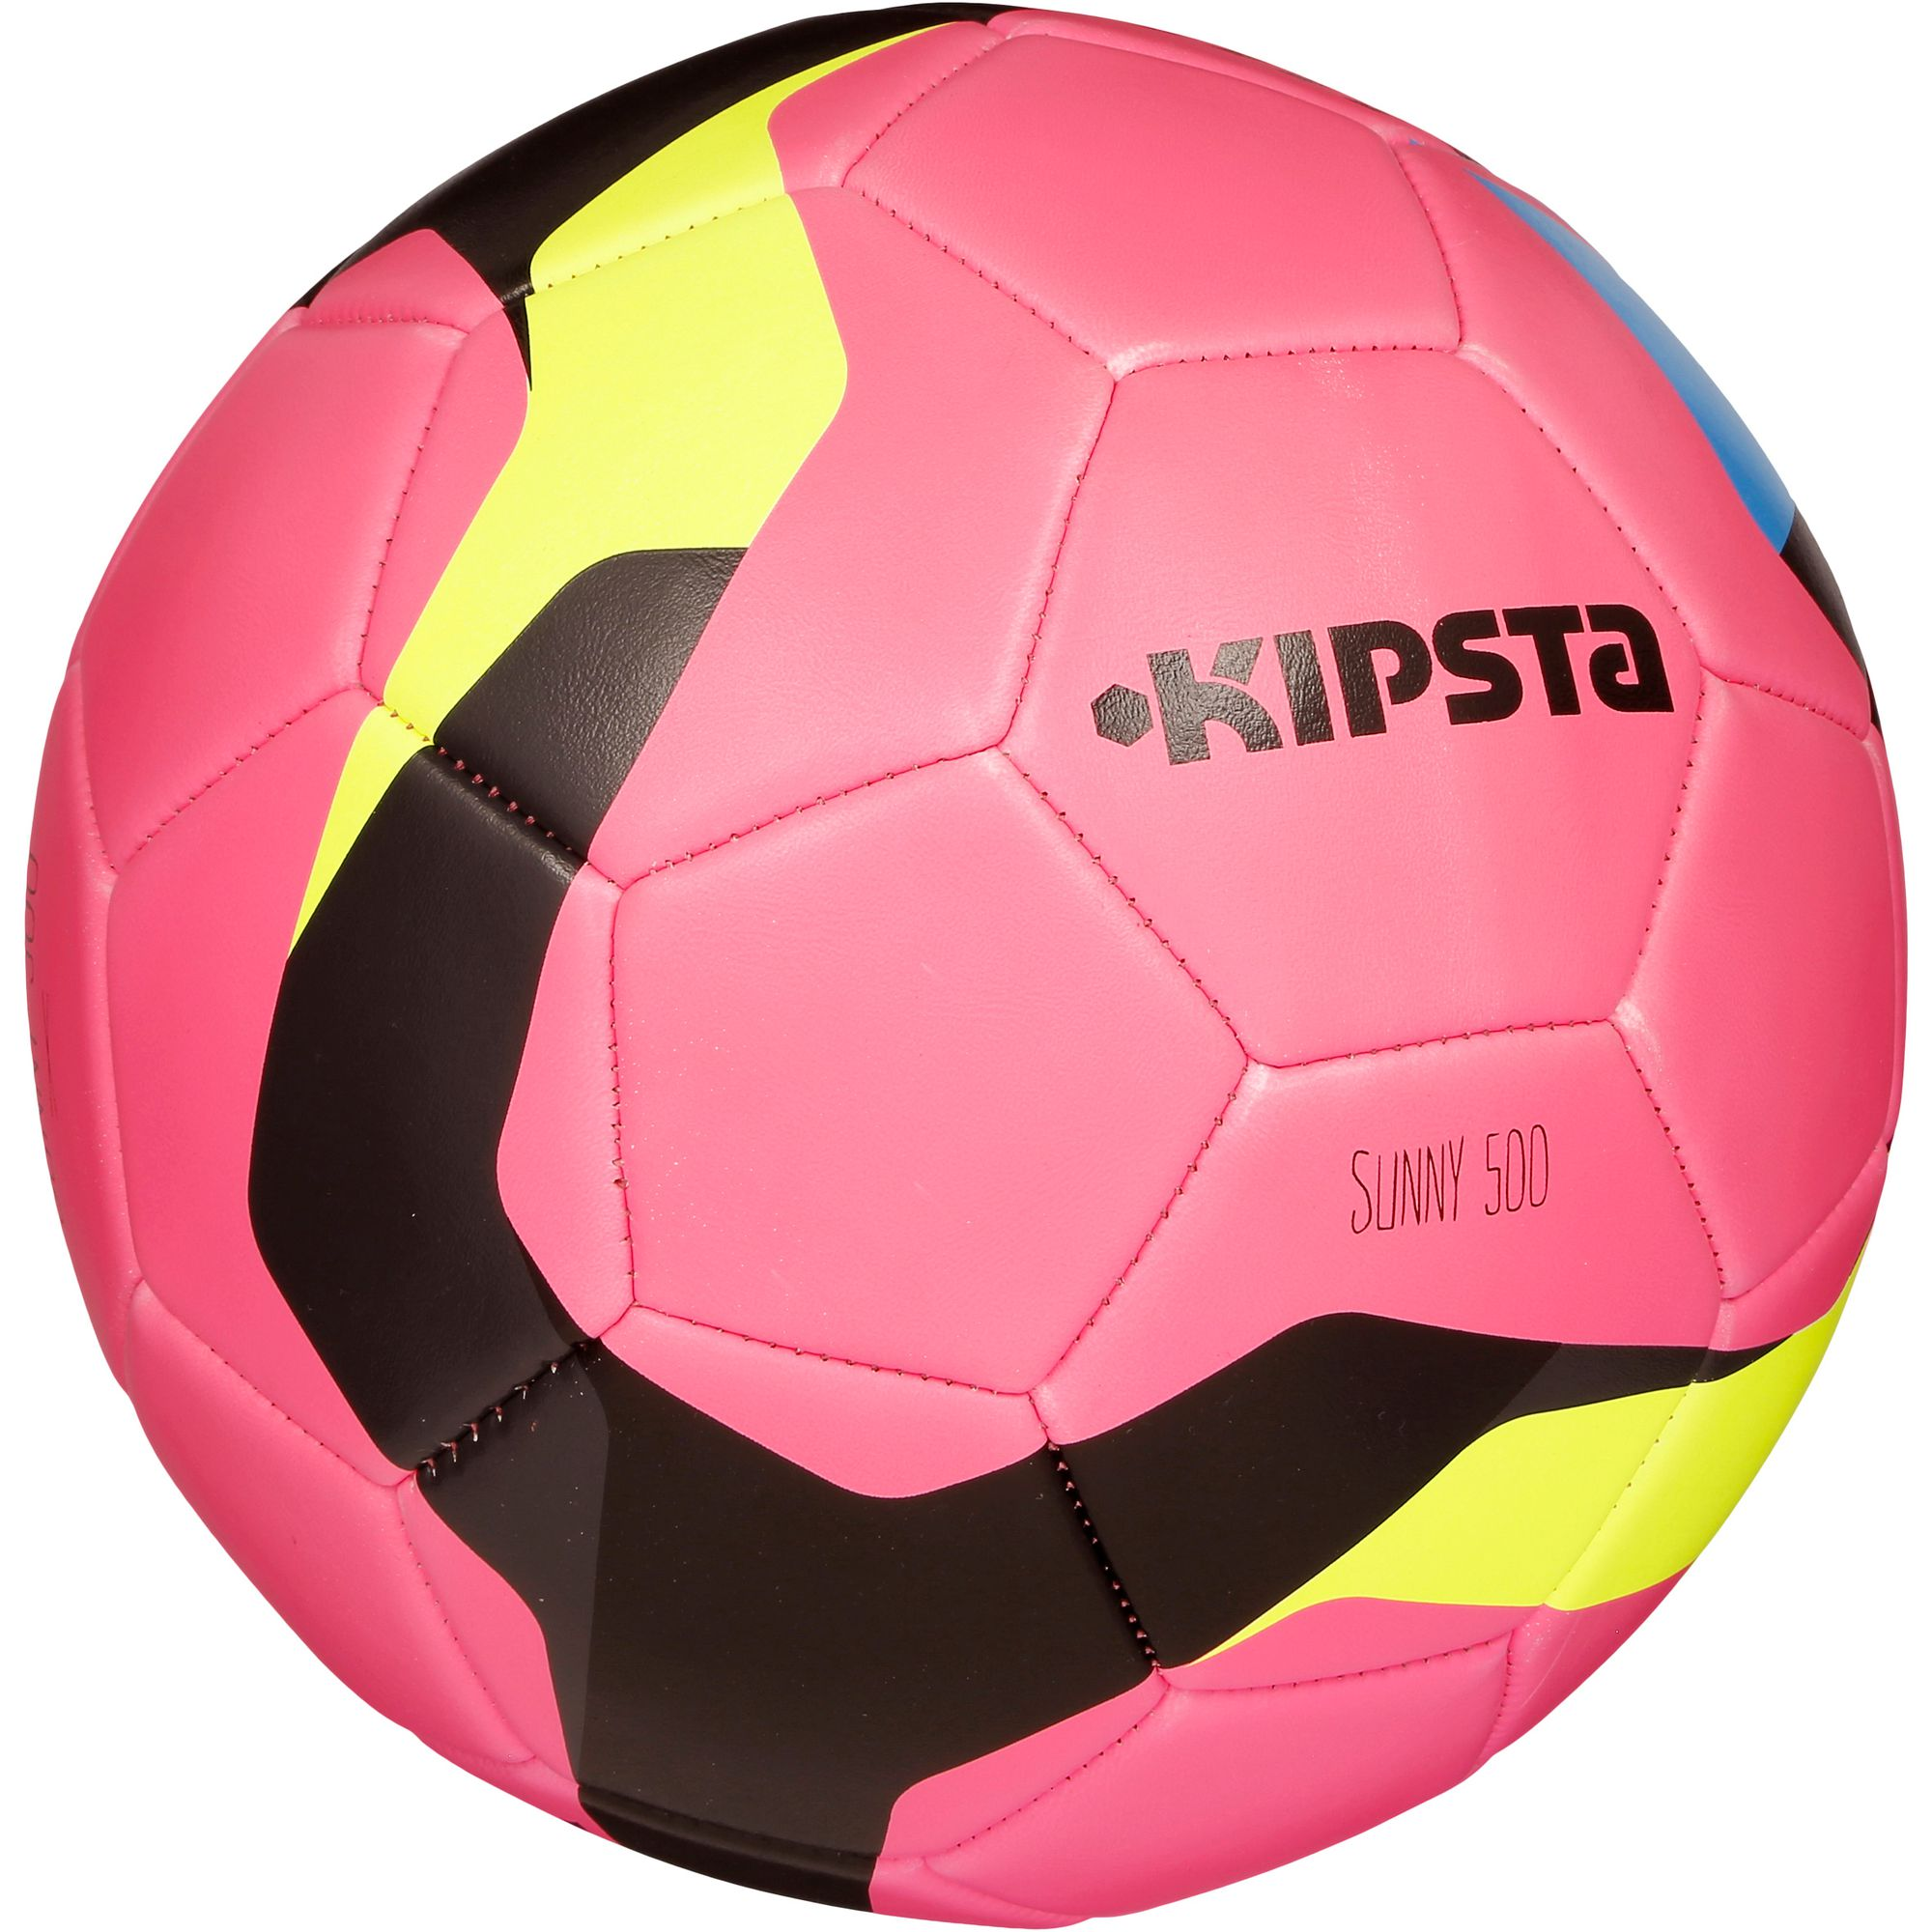 Ballon football Sunny 500 taille 5 rose gris